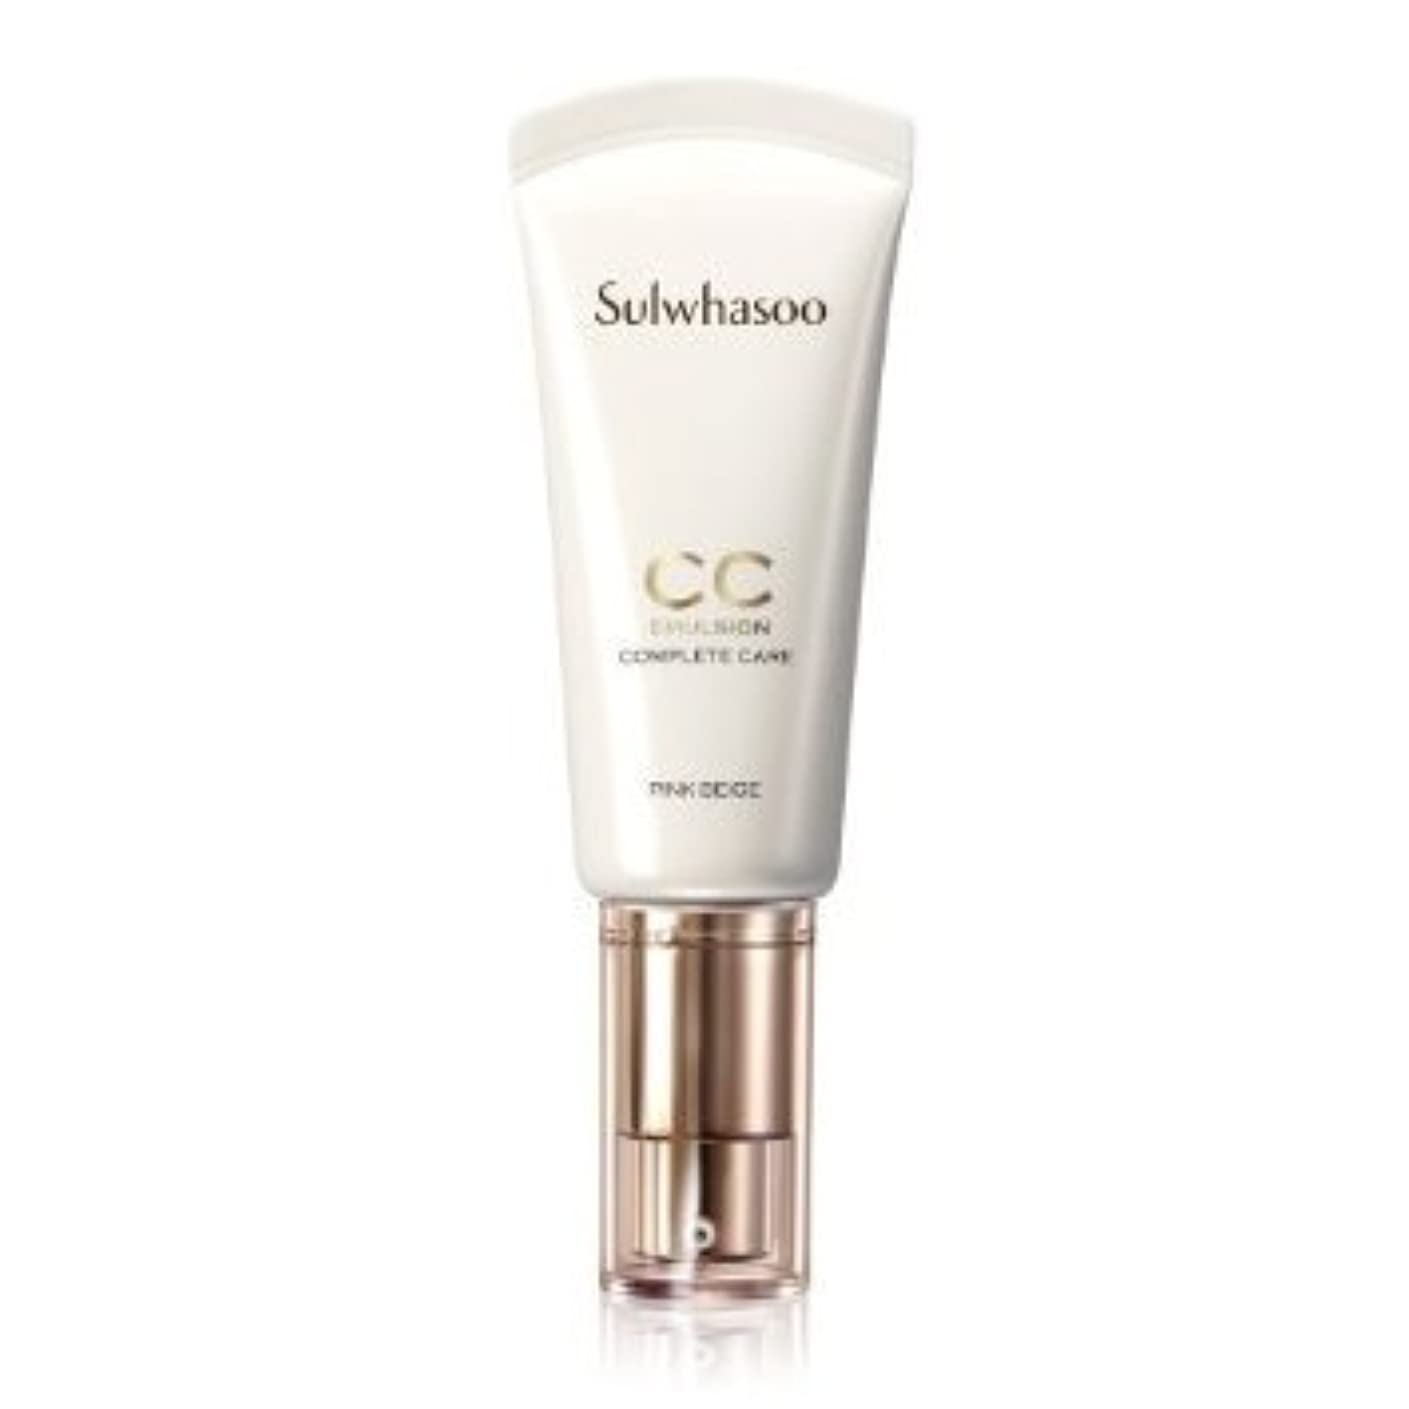 付ける改善する霜Sulwhasoo CC Emulsion BB Cream Blemish Balm #02 Medium Beige[並行輸入品]